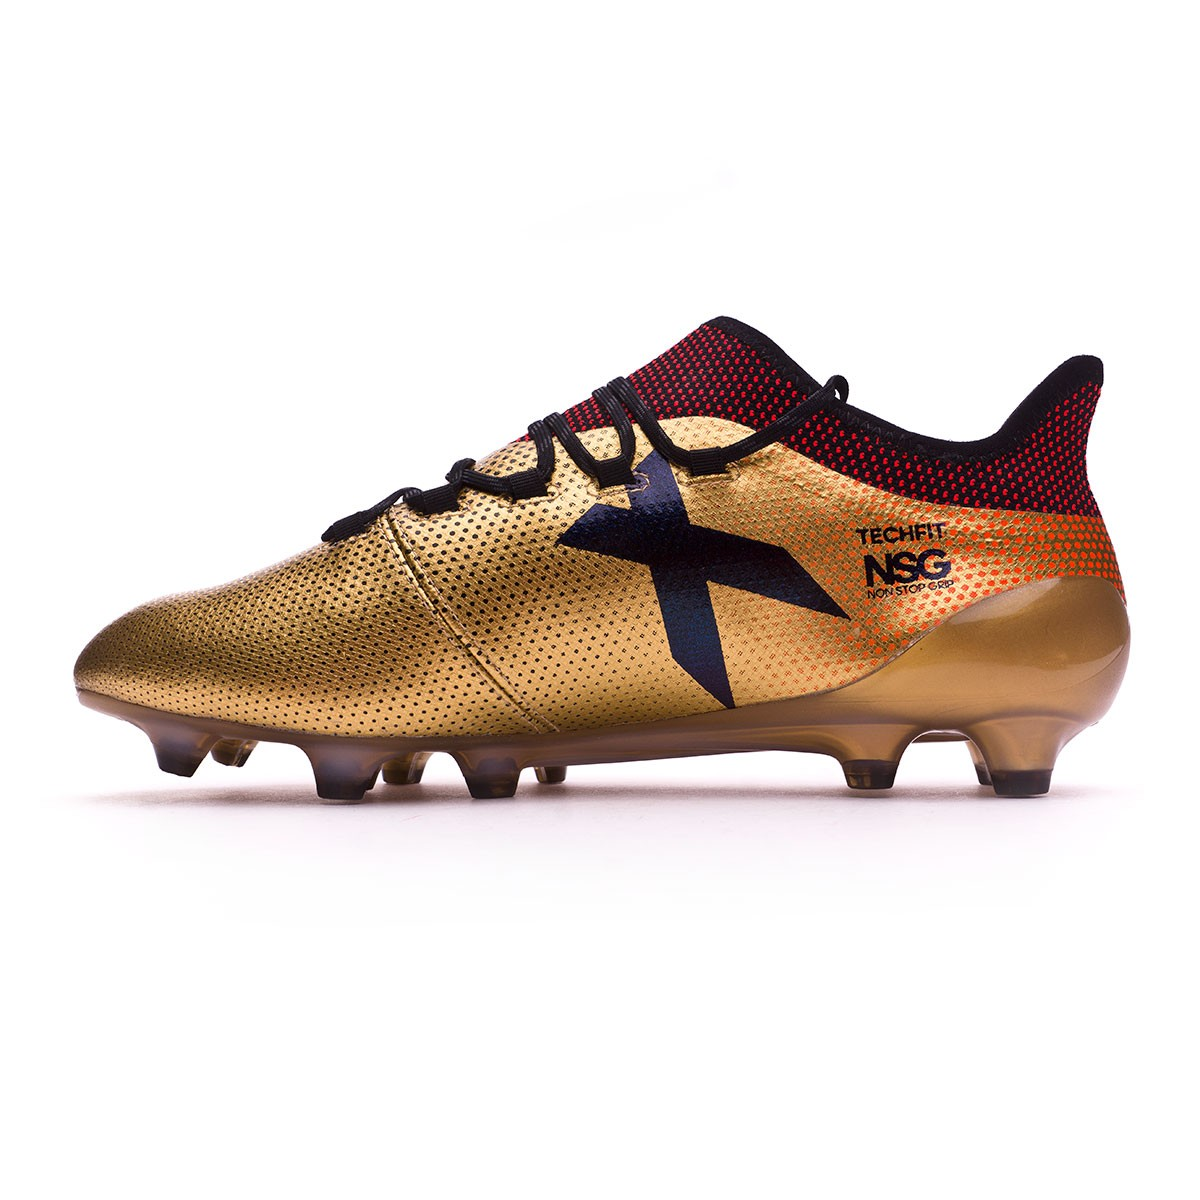 2c082669d140 Football Boots adidas X 17.1 FG Tactile gold metallic-Core black-Solar red  - Tienda de fútbol Fútbol Emotion